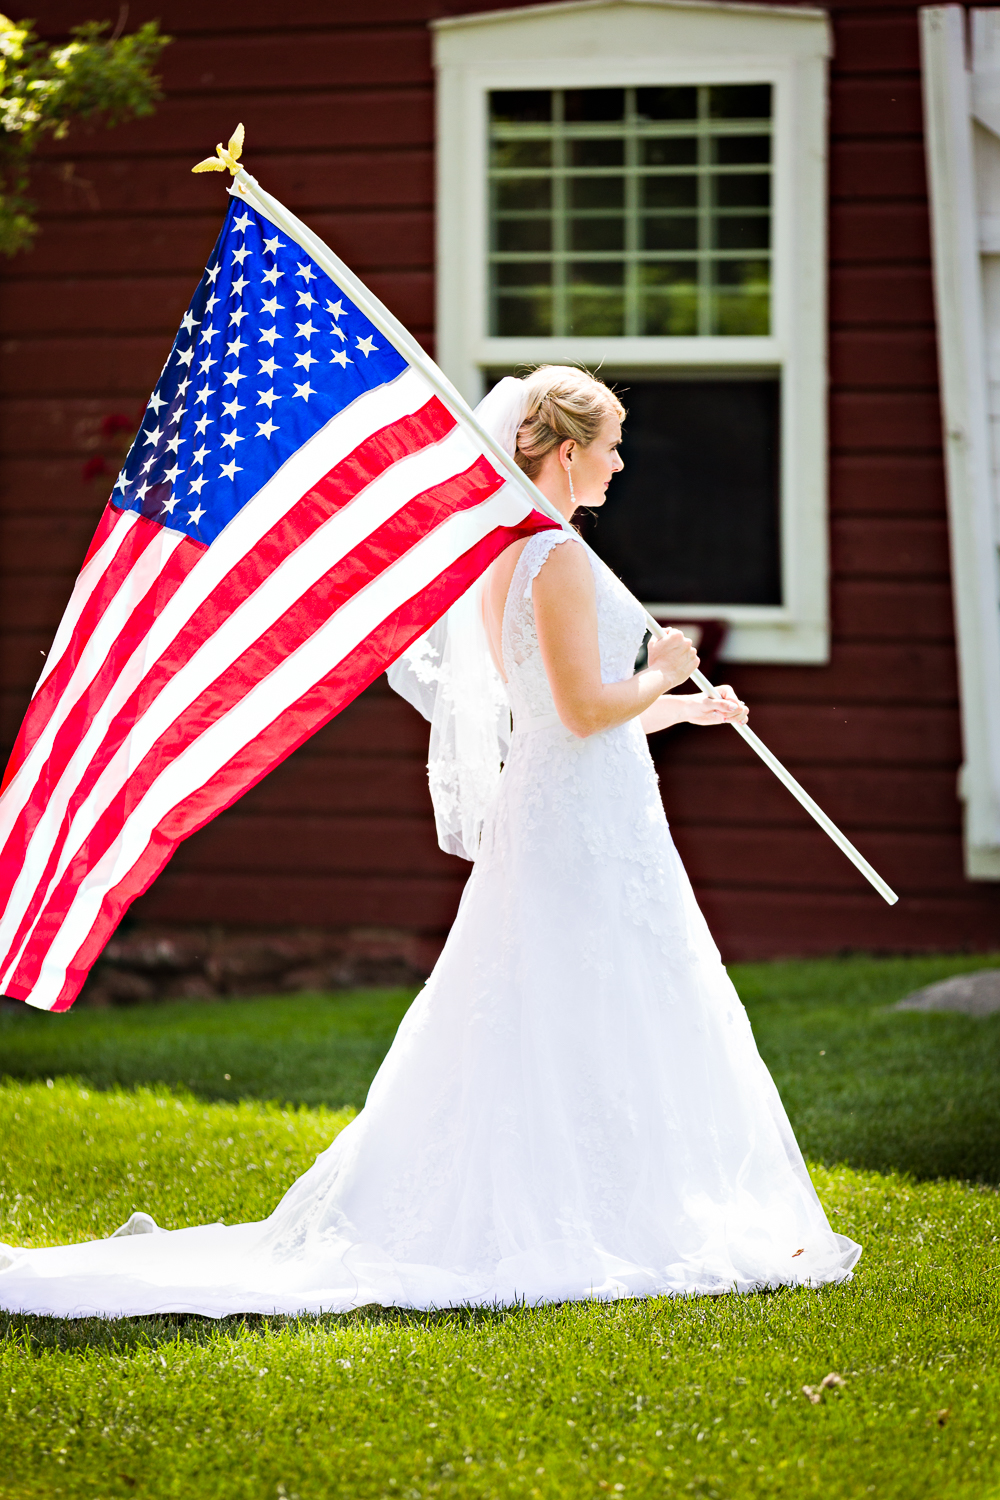 bozeman-montana-wedding-roys-barn-bride-carrying-american-flag.jpg